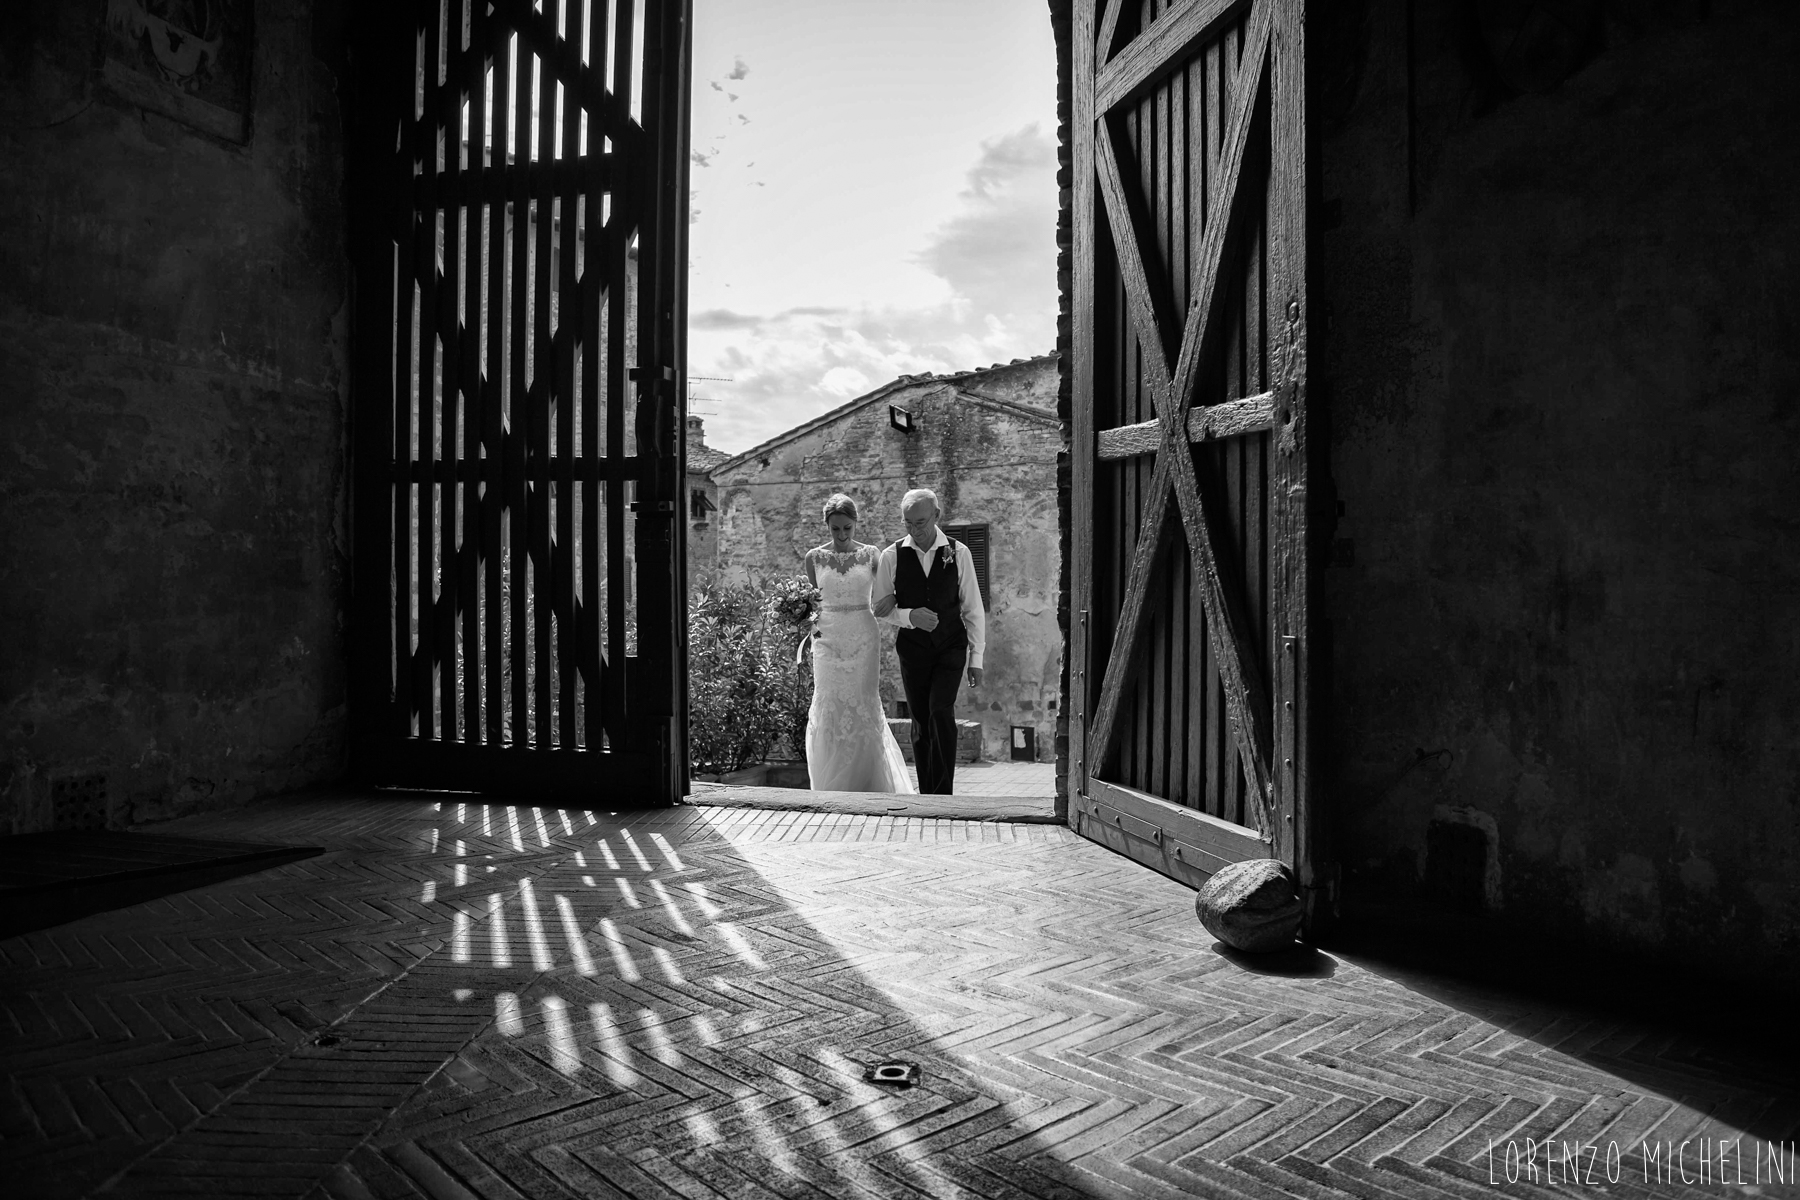 best-wedding-photographer-italy-fotografo-sposi-toscana-31